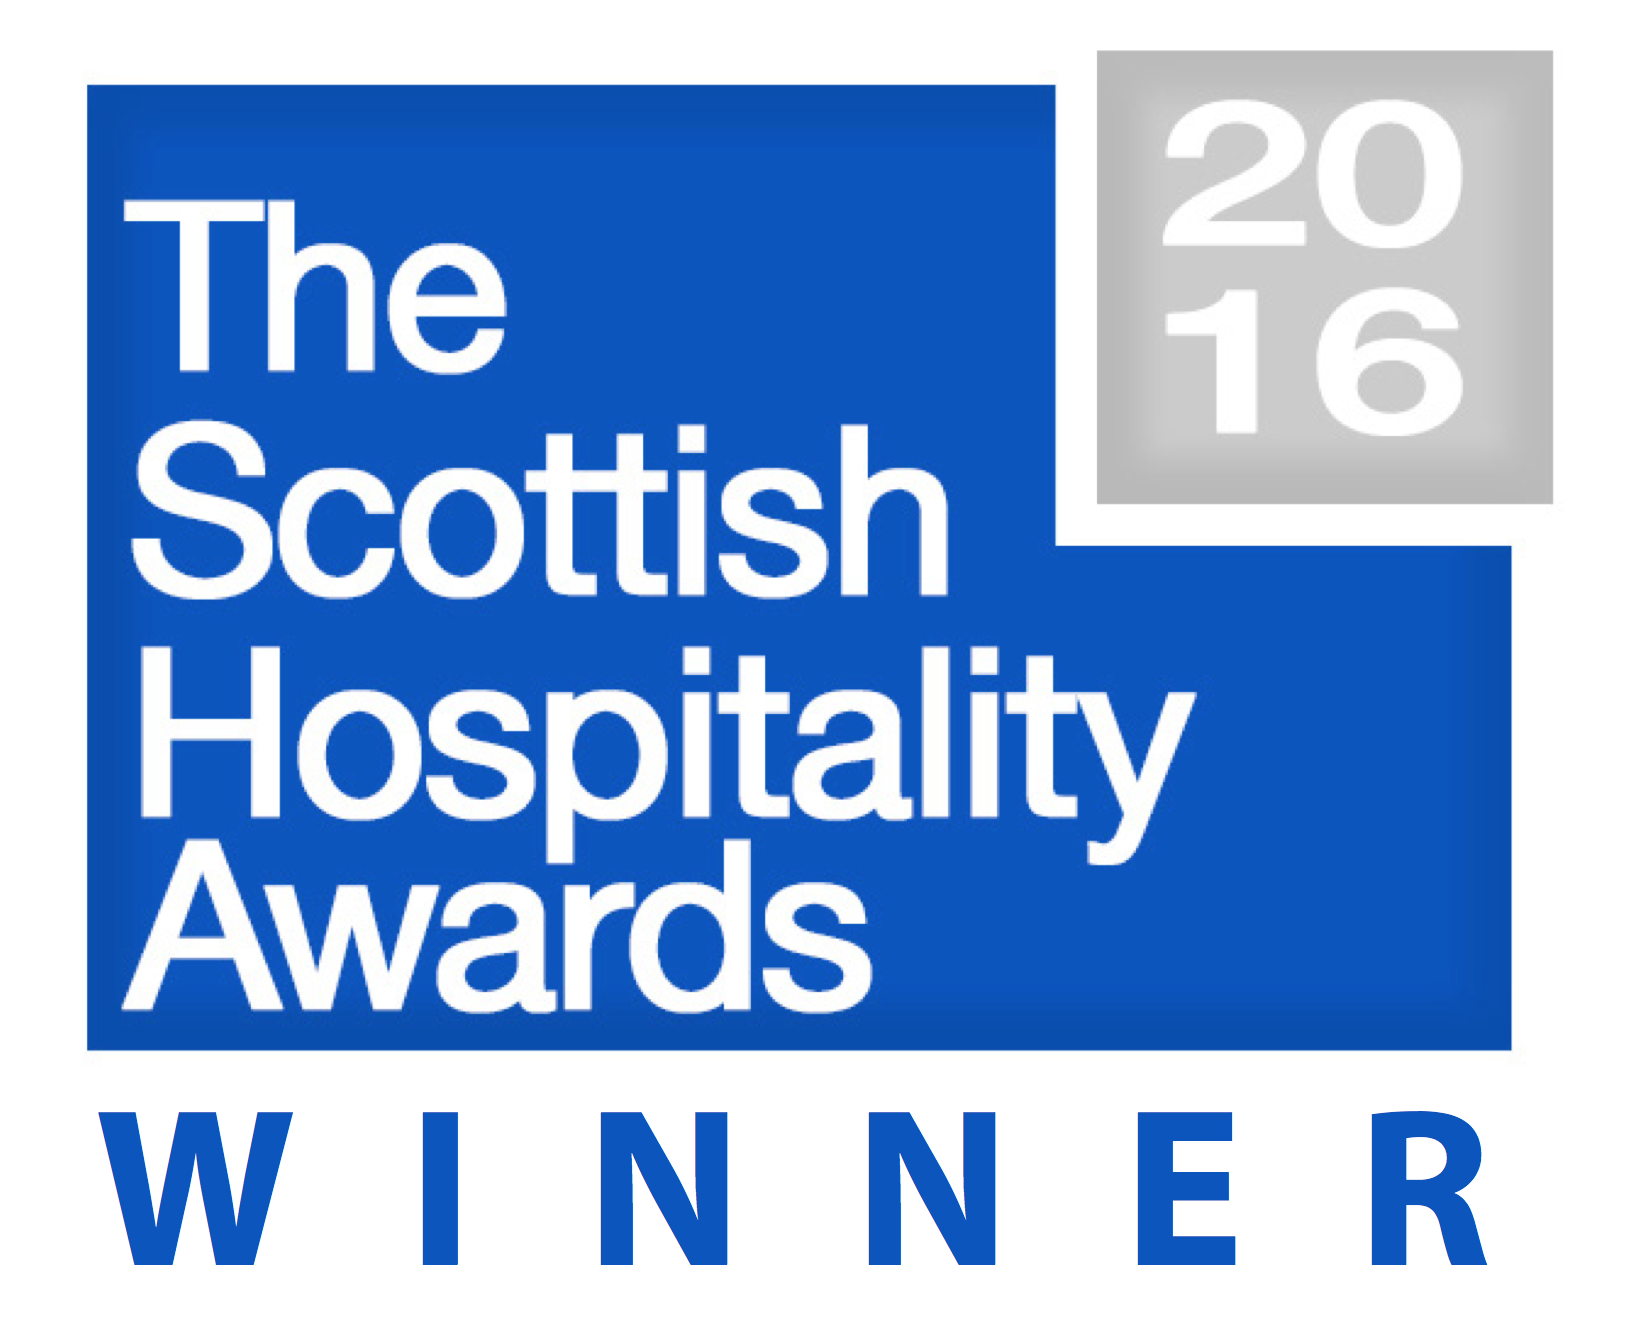 the scottish hospitality awards